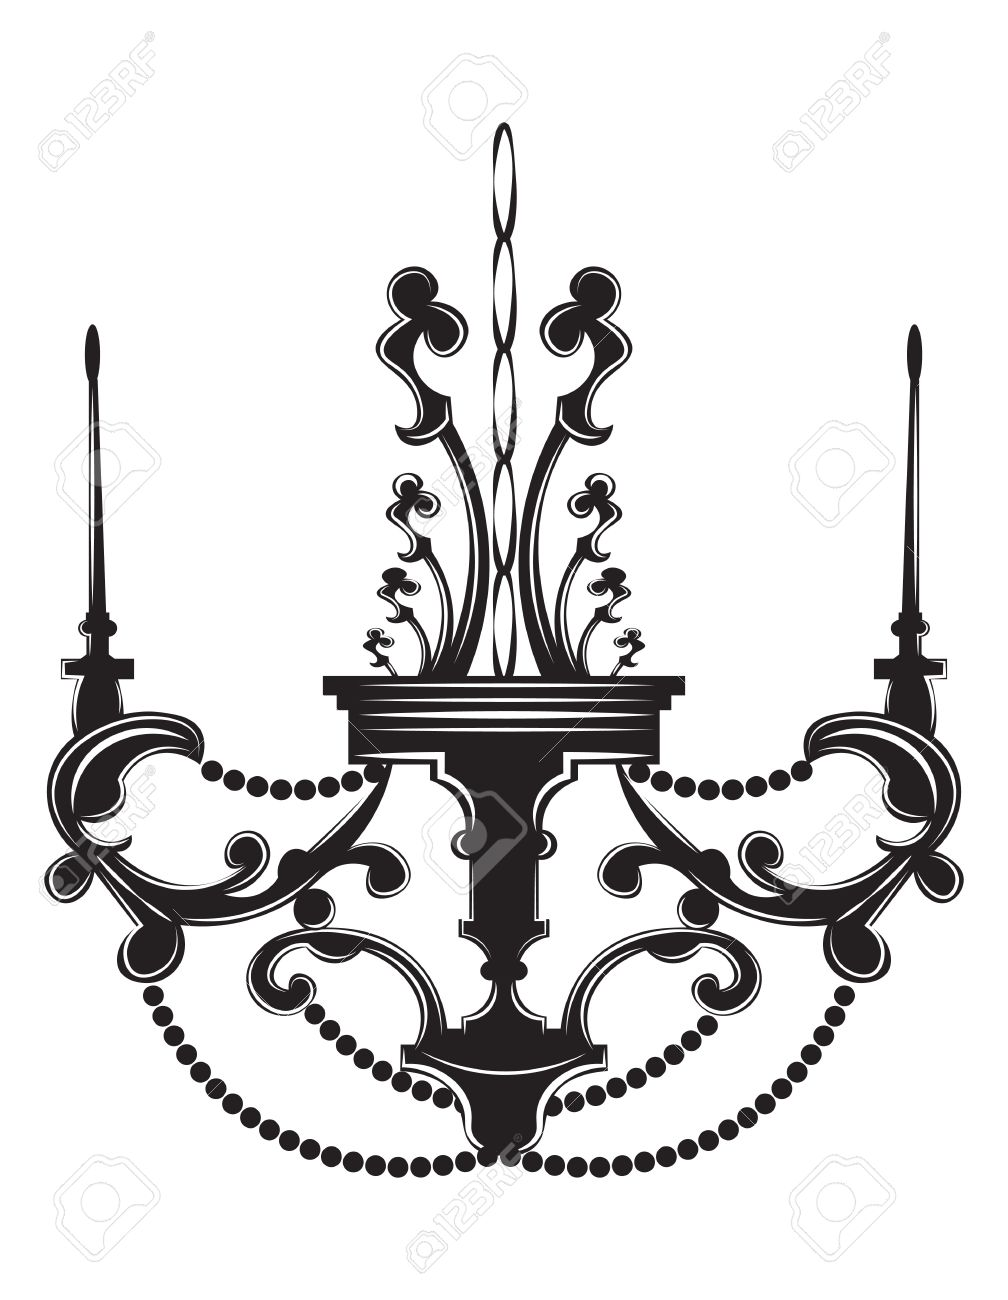 Baroque Elegant Lamp Vintage Ornamented Vector Luxury Royal Style Decor Classic Chandelier Illustration